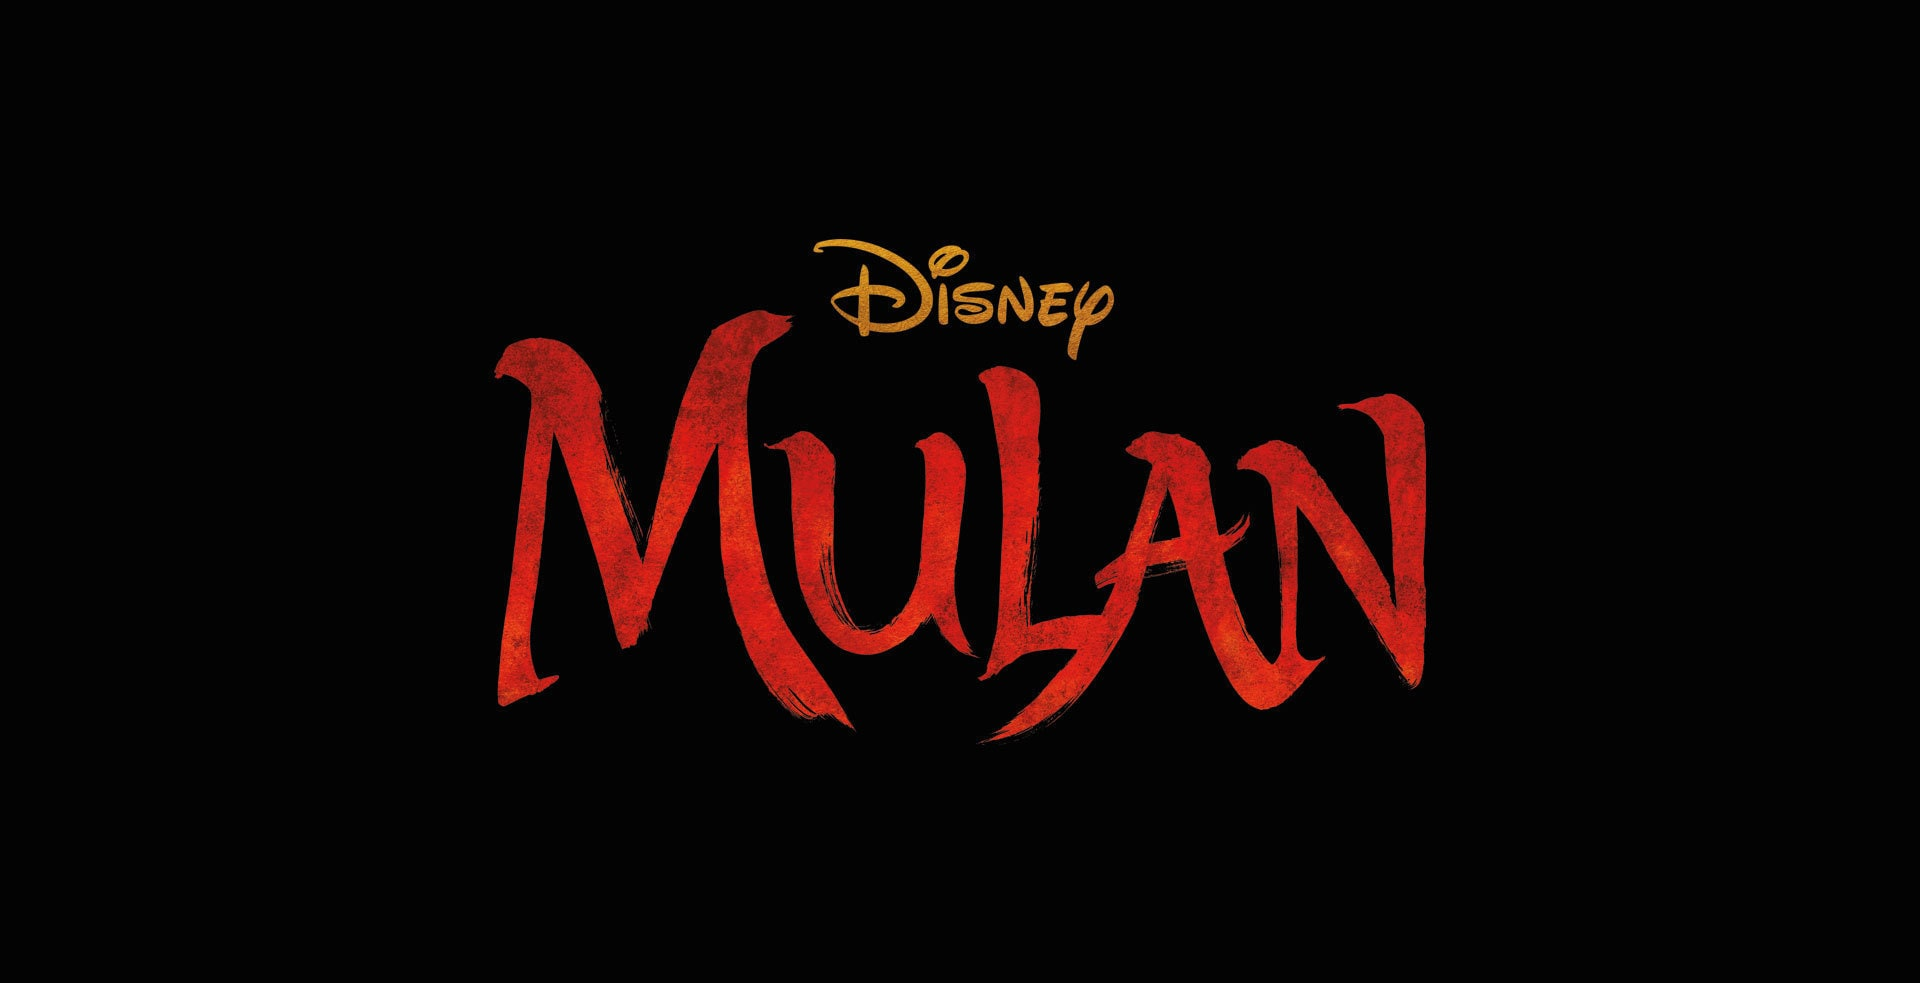 Disney's Mulan - Banner Hero Object